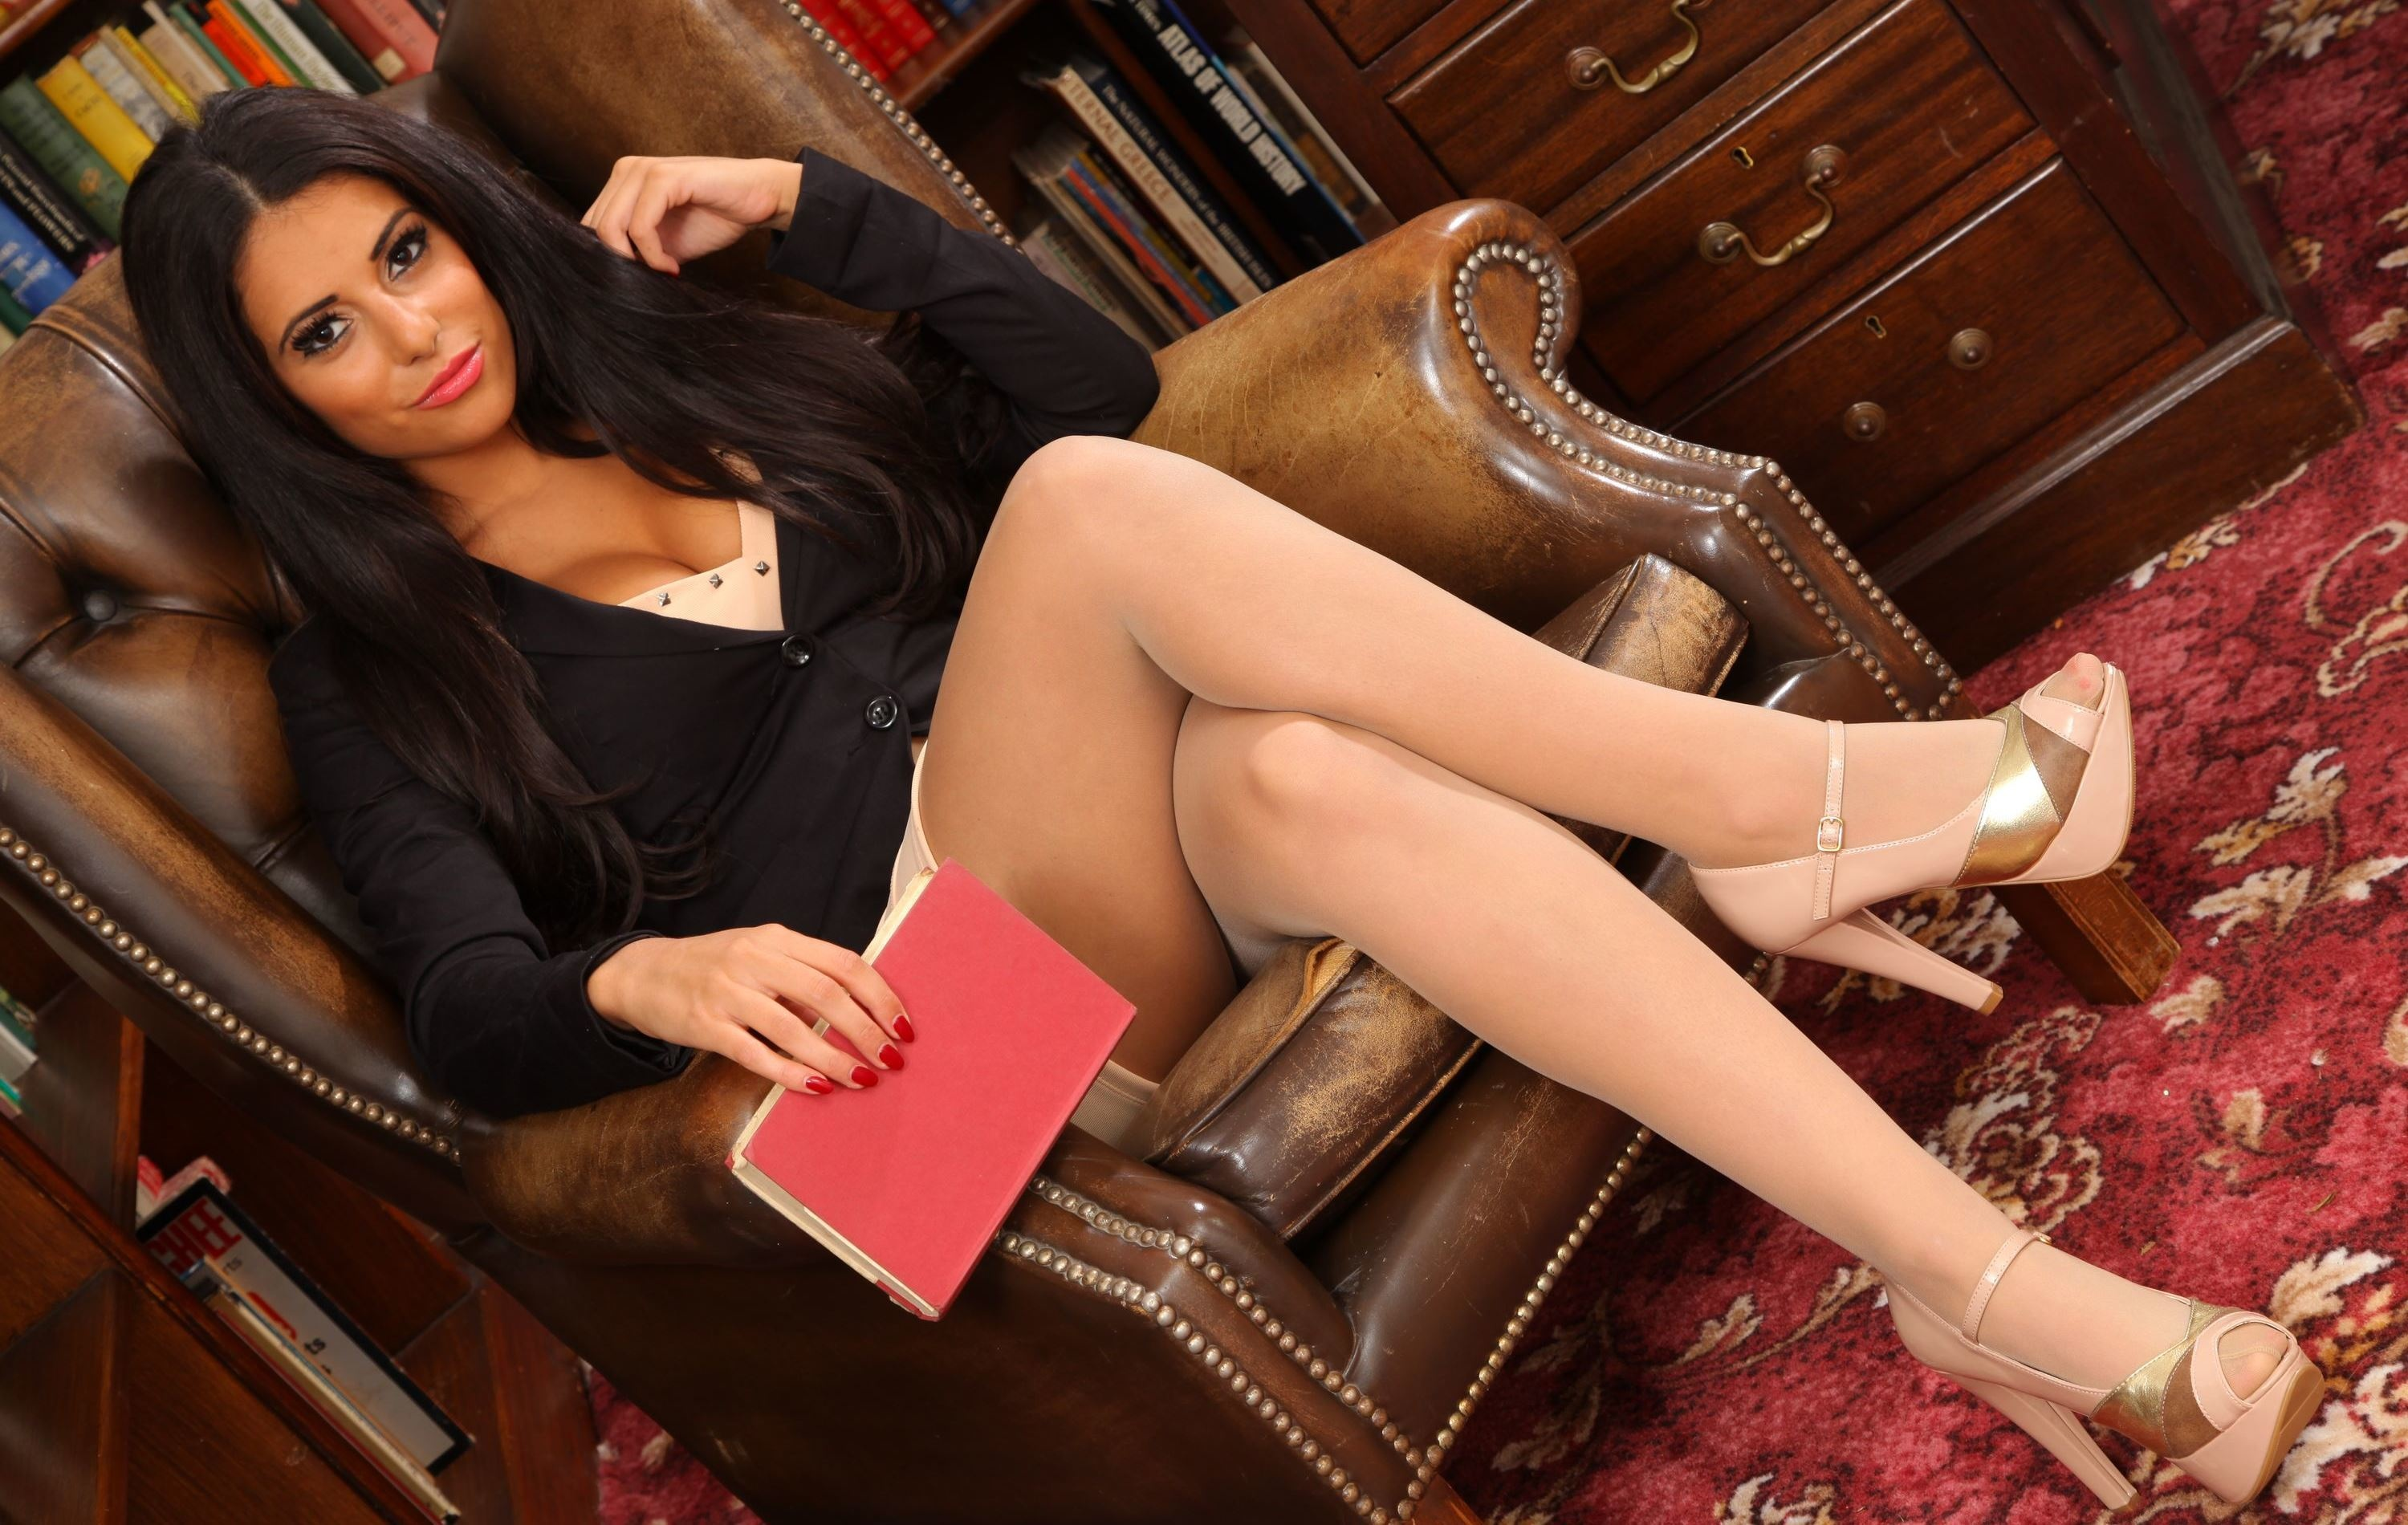 European chick Mira Sunset modeling sexy stockings in home office  668307